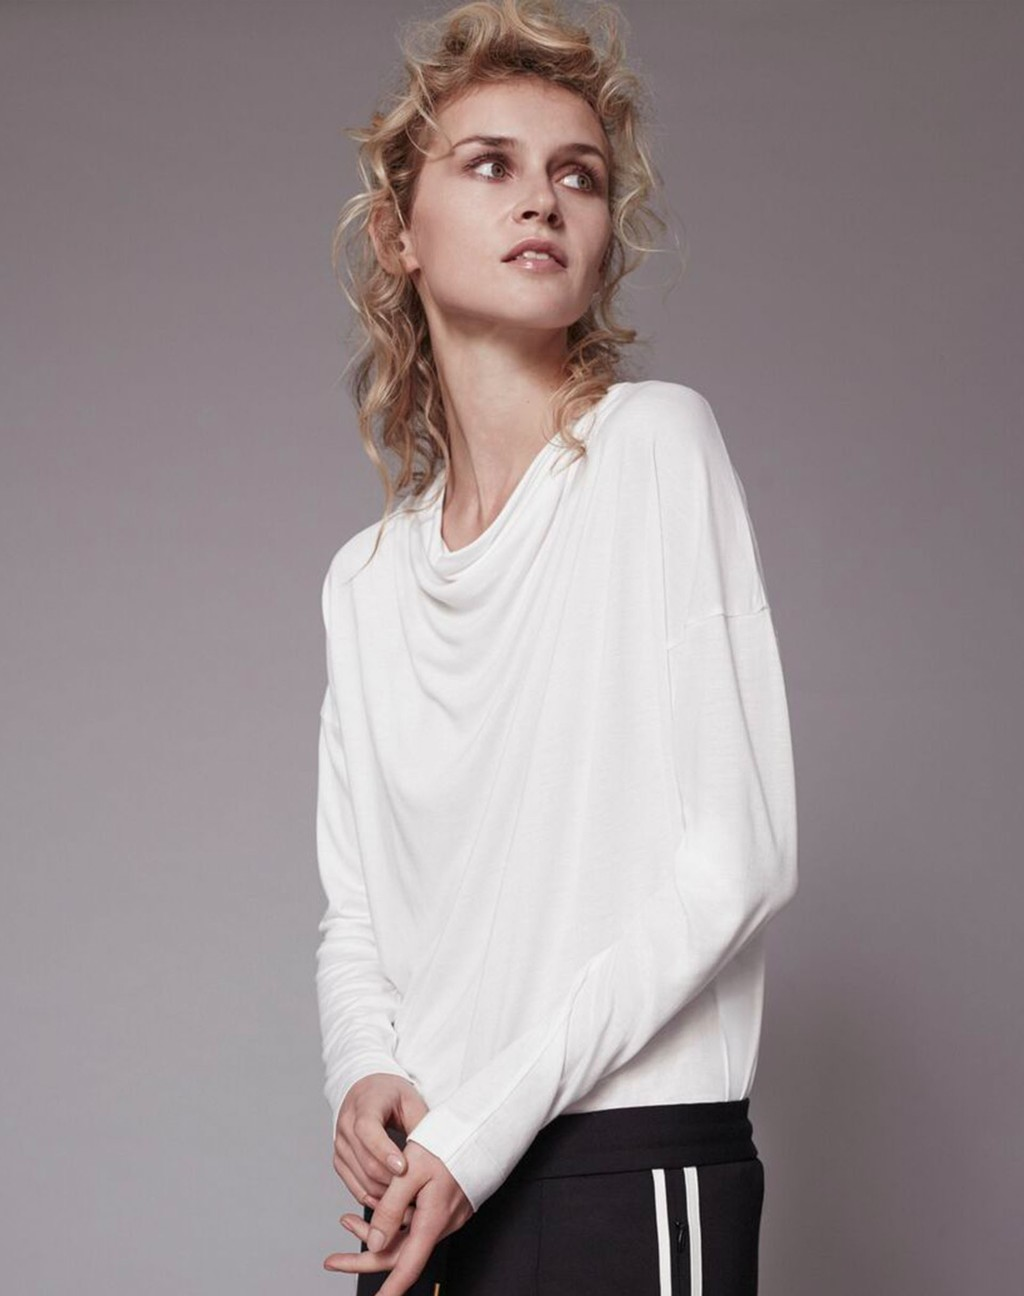 Cowl Neck Tee Soft White - neckline: cowl/draped neck; sleeve style: dolman/batwing; pattern: plain; style: t-shirt; predominant colour: ivory/cream; occasions: casual, creative work; length: standard; fibres: cotton - stretch; fit: straight cut; sleeve length: long sleeve; pattern type: fabric; texture group: jersey - stretchy/drapey; season: s/s 2016; wardrobe: basic